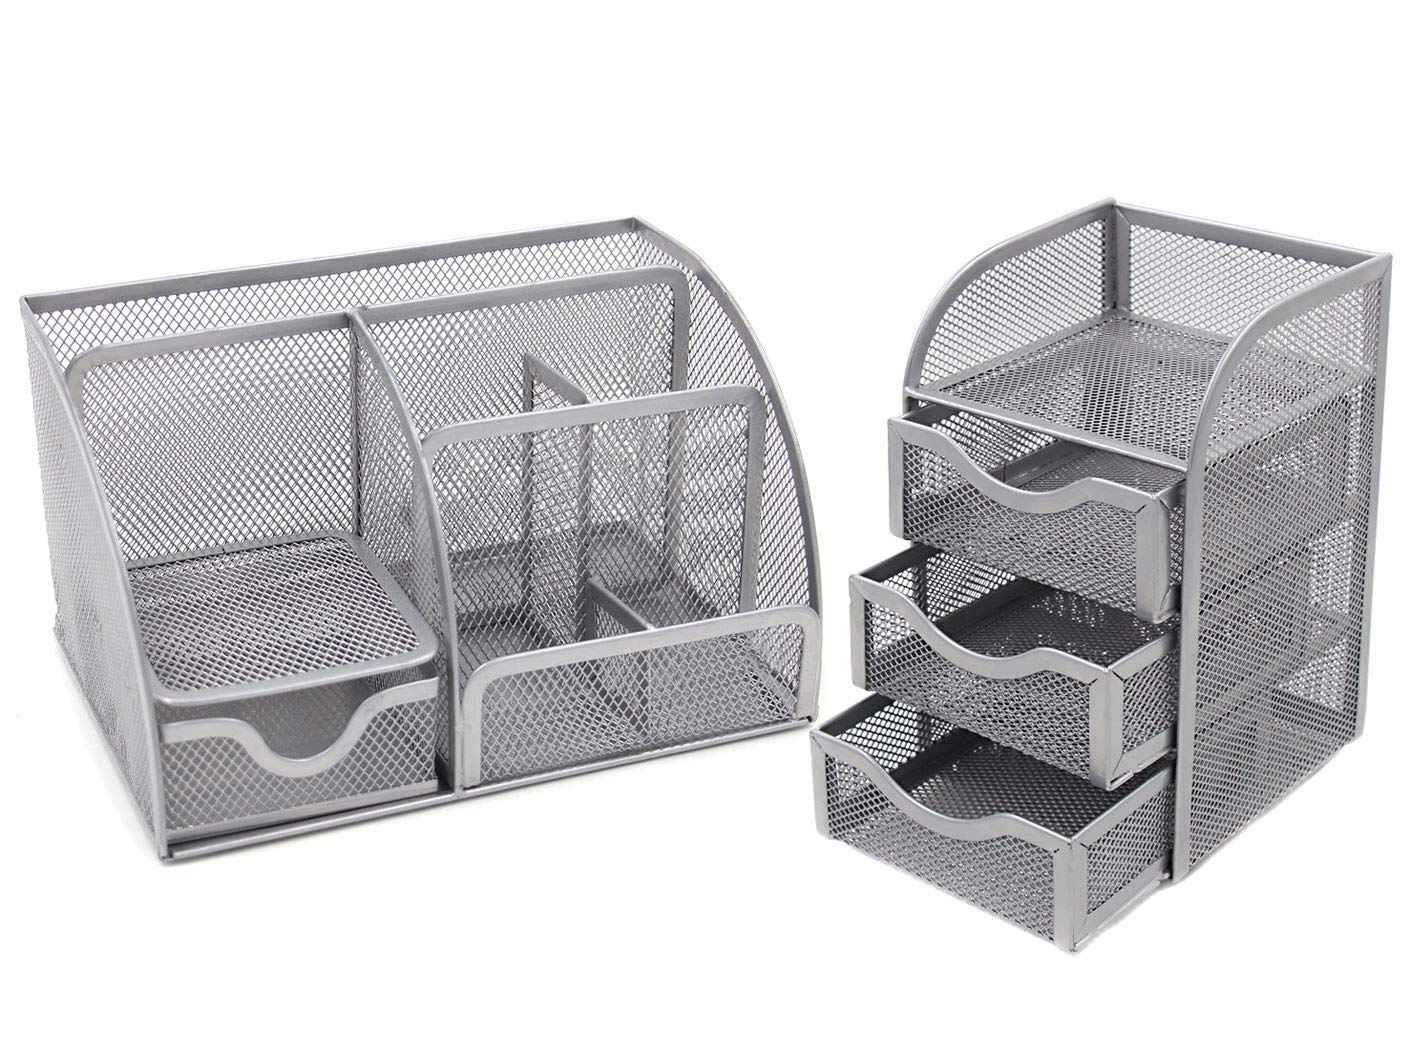 Multifunctional Stationery Organiser Pen Pot Caddy and 3 Small Drawer Mini Chest Office Supplies Holder Accessories Storage Cube Box,Silver Generic Mesh Desk Tidy 2 Piece Set